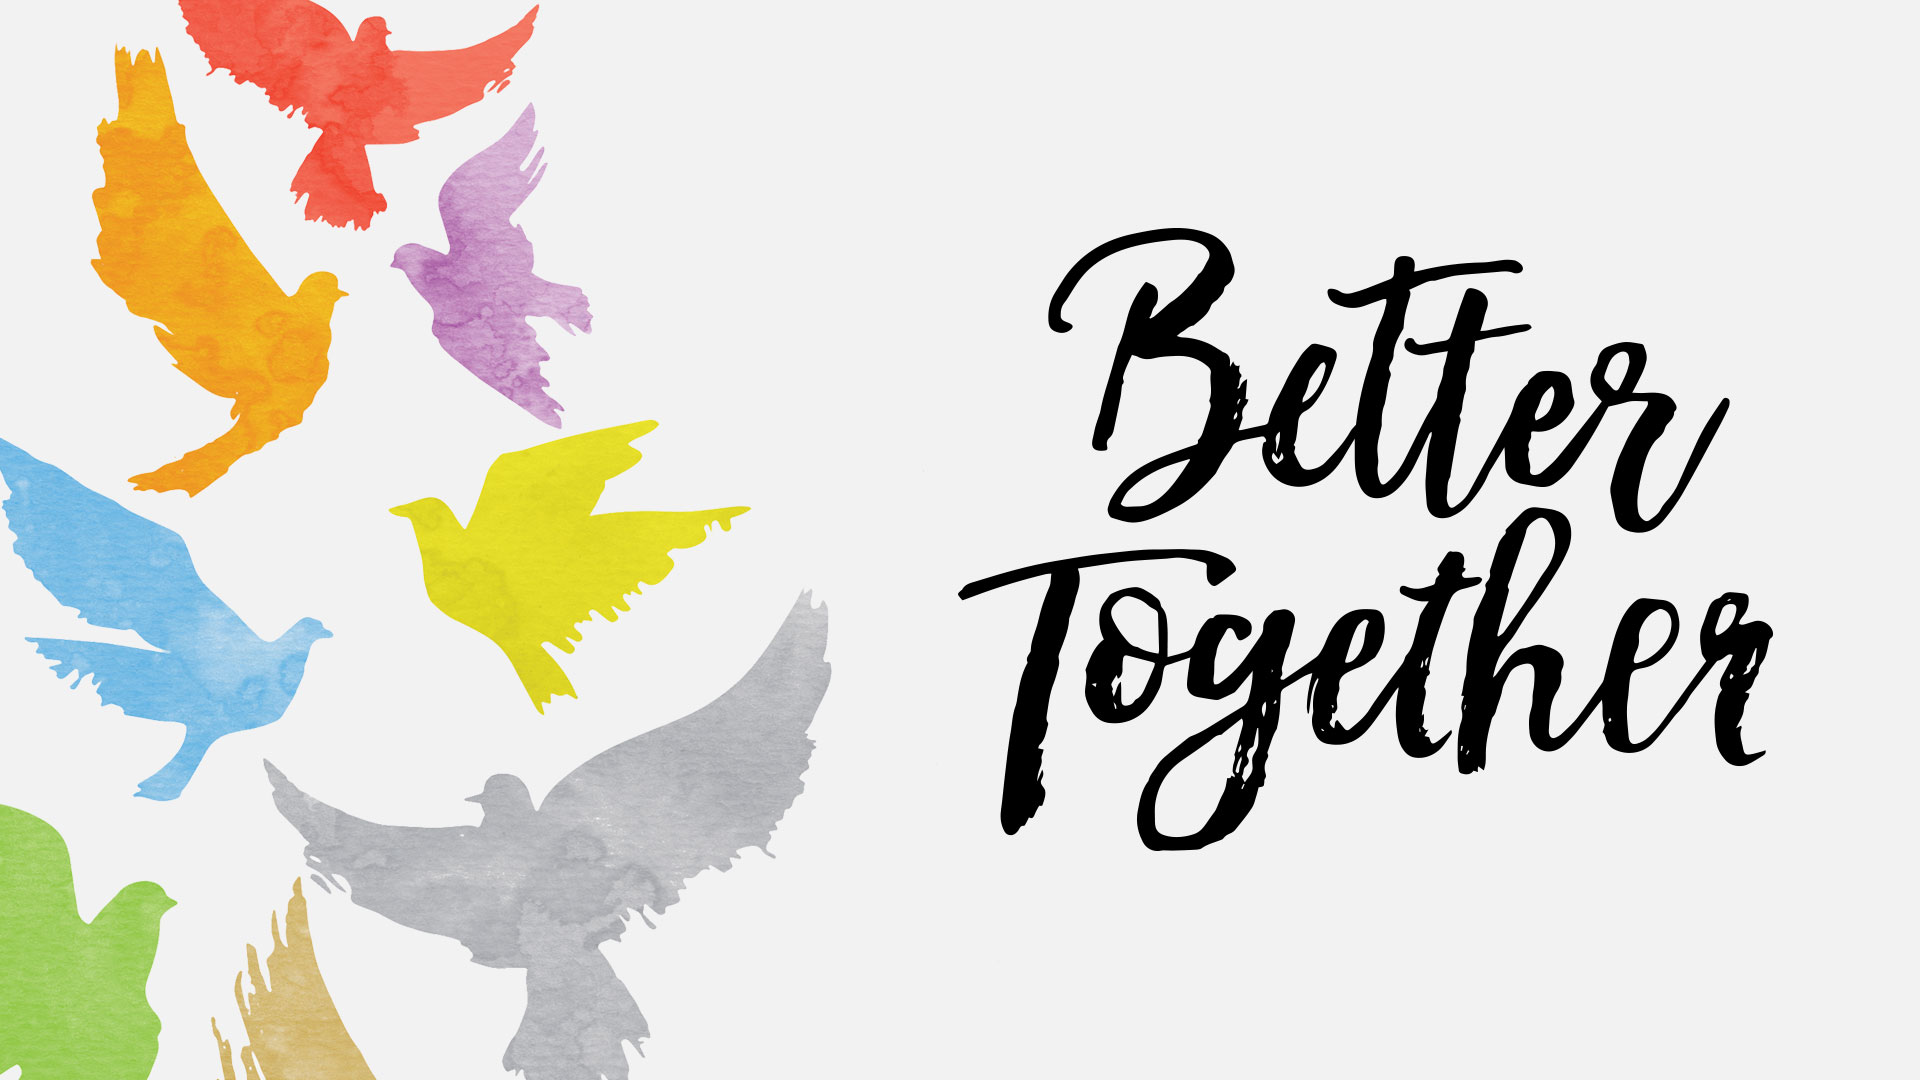 Message Series: Better Together